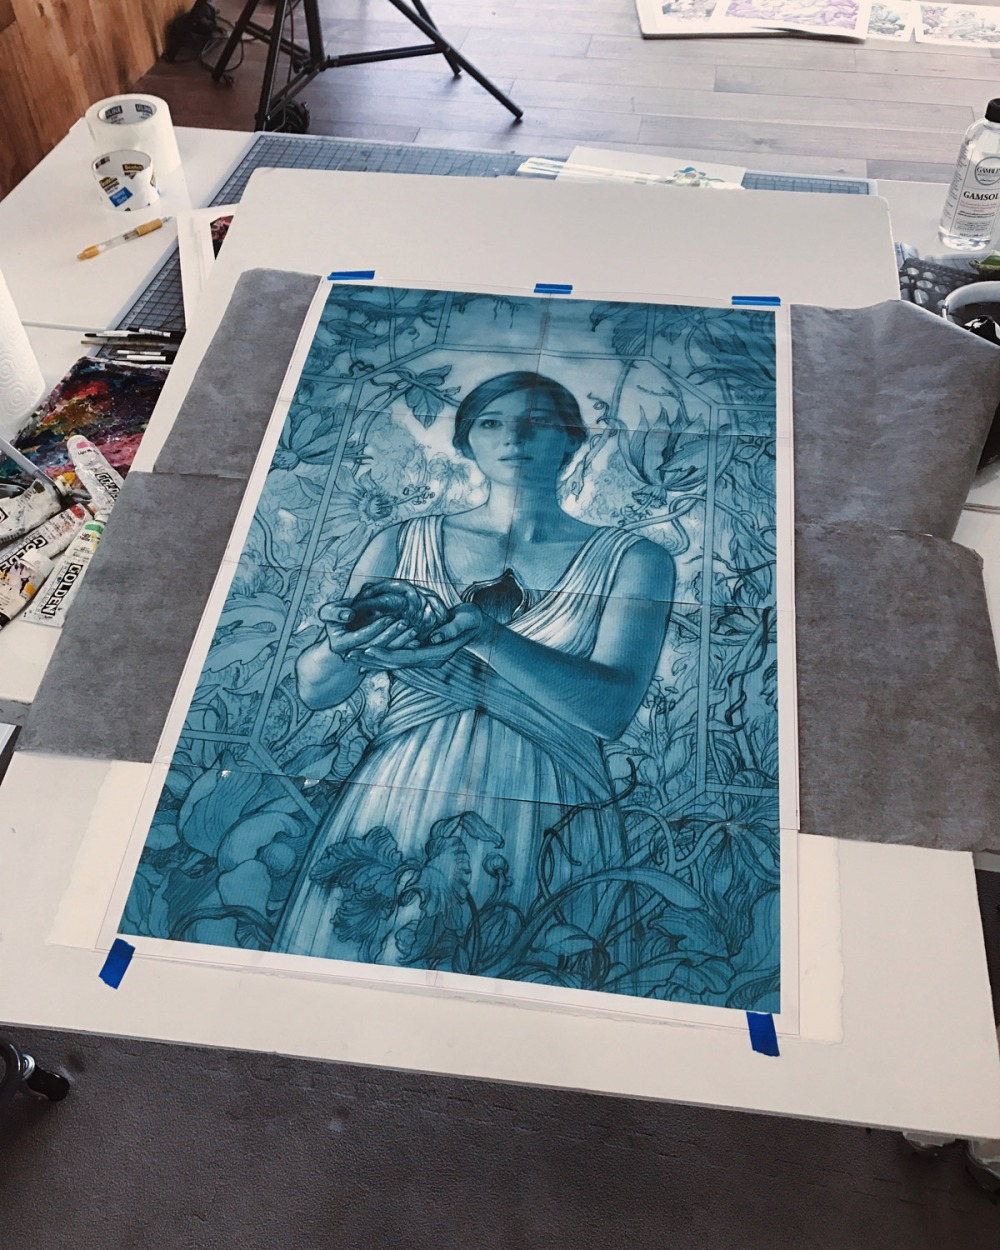 jamesjean-poster-mother-wip13.jpg